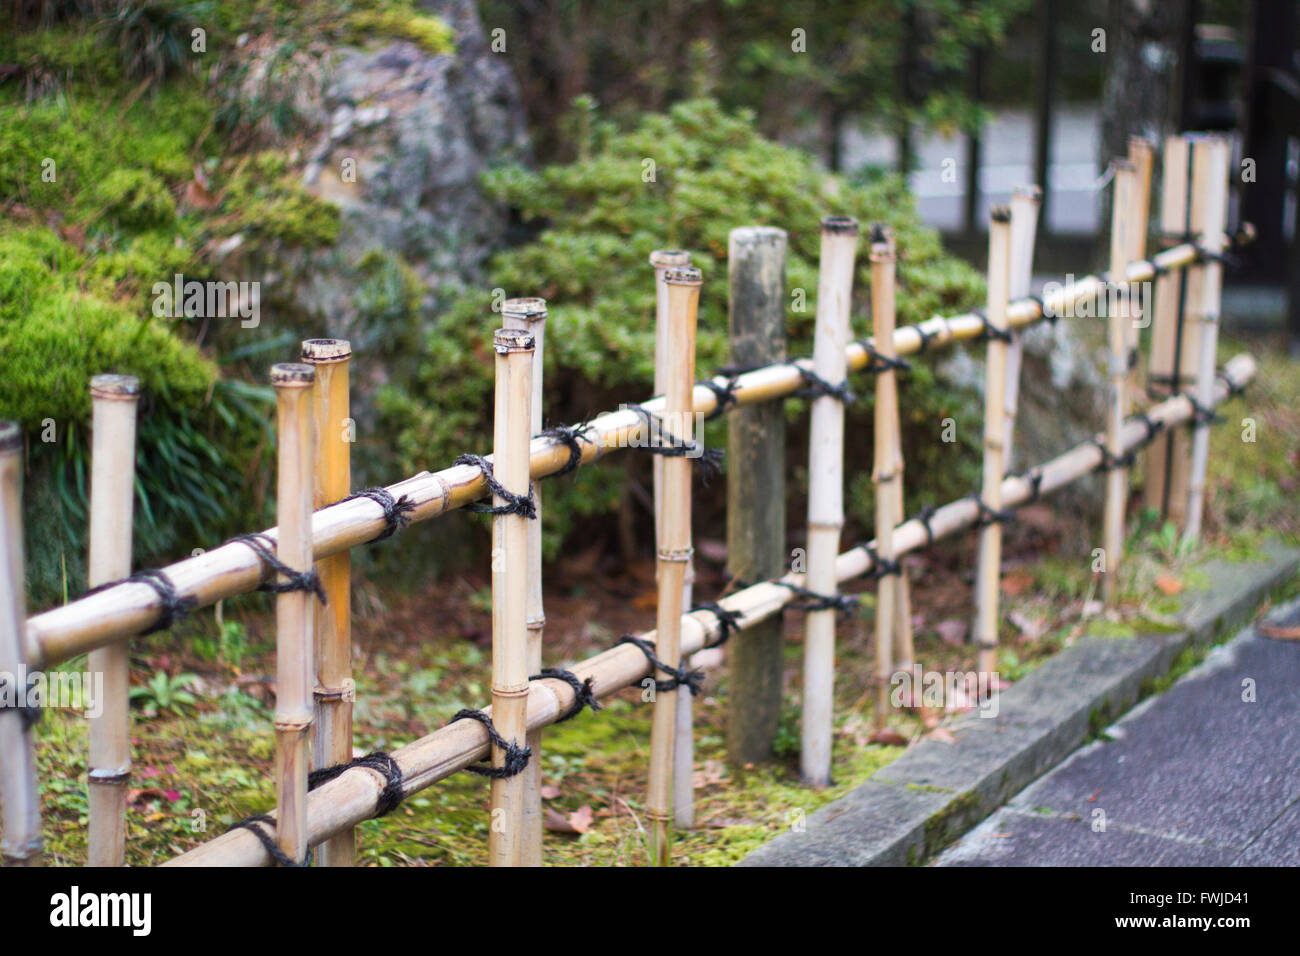 decorative gate in bamboo fence stock image image of.htm japanese fence stock photos   japanese fence stock images alamy  japanese fence stock photos   japanese